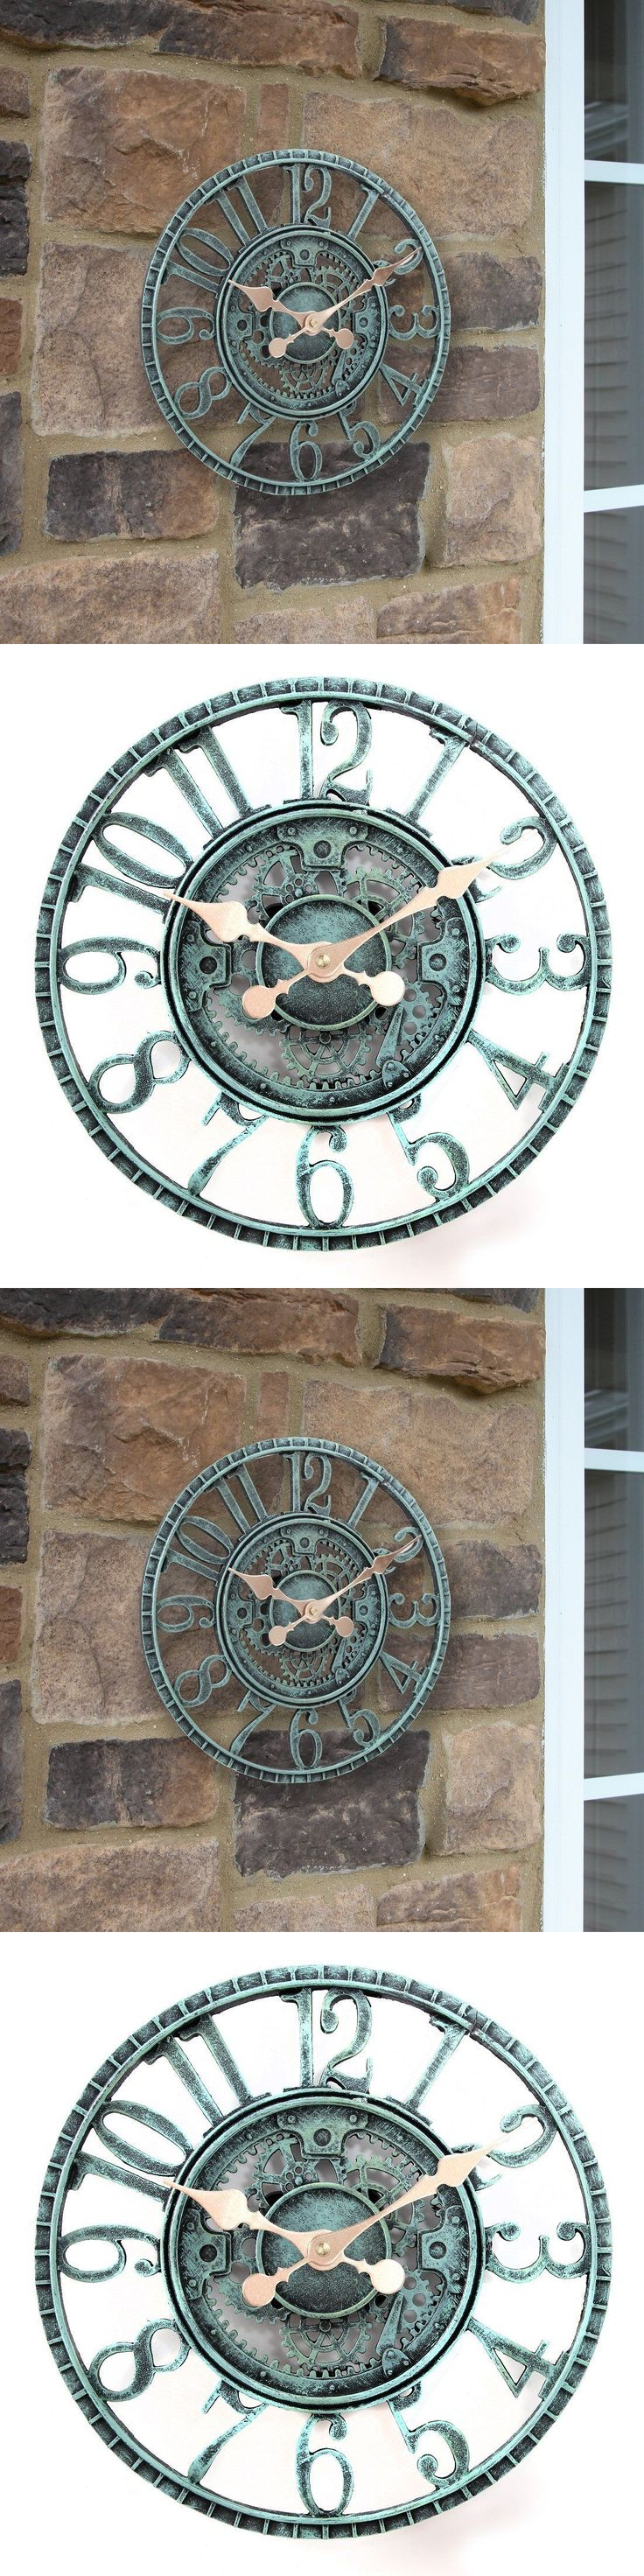 Outdoor Thermometers 75601: New Indoor Outdoor Wall Clock Steampunk Gear Cog Design, 12 Poly Resin Pewter -> BUY IT NOW ONLY: $32.97 on eBay!